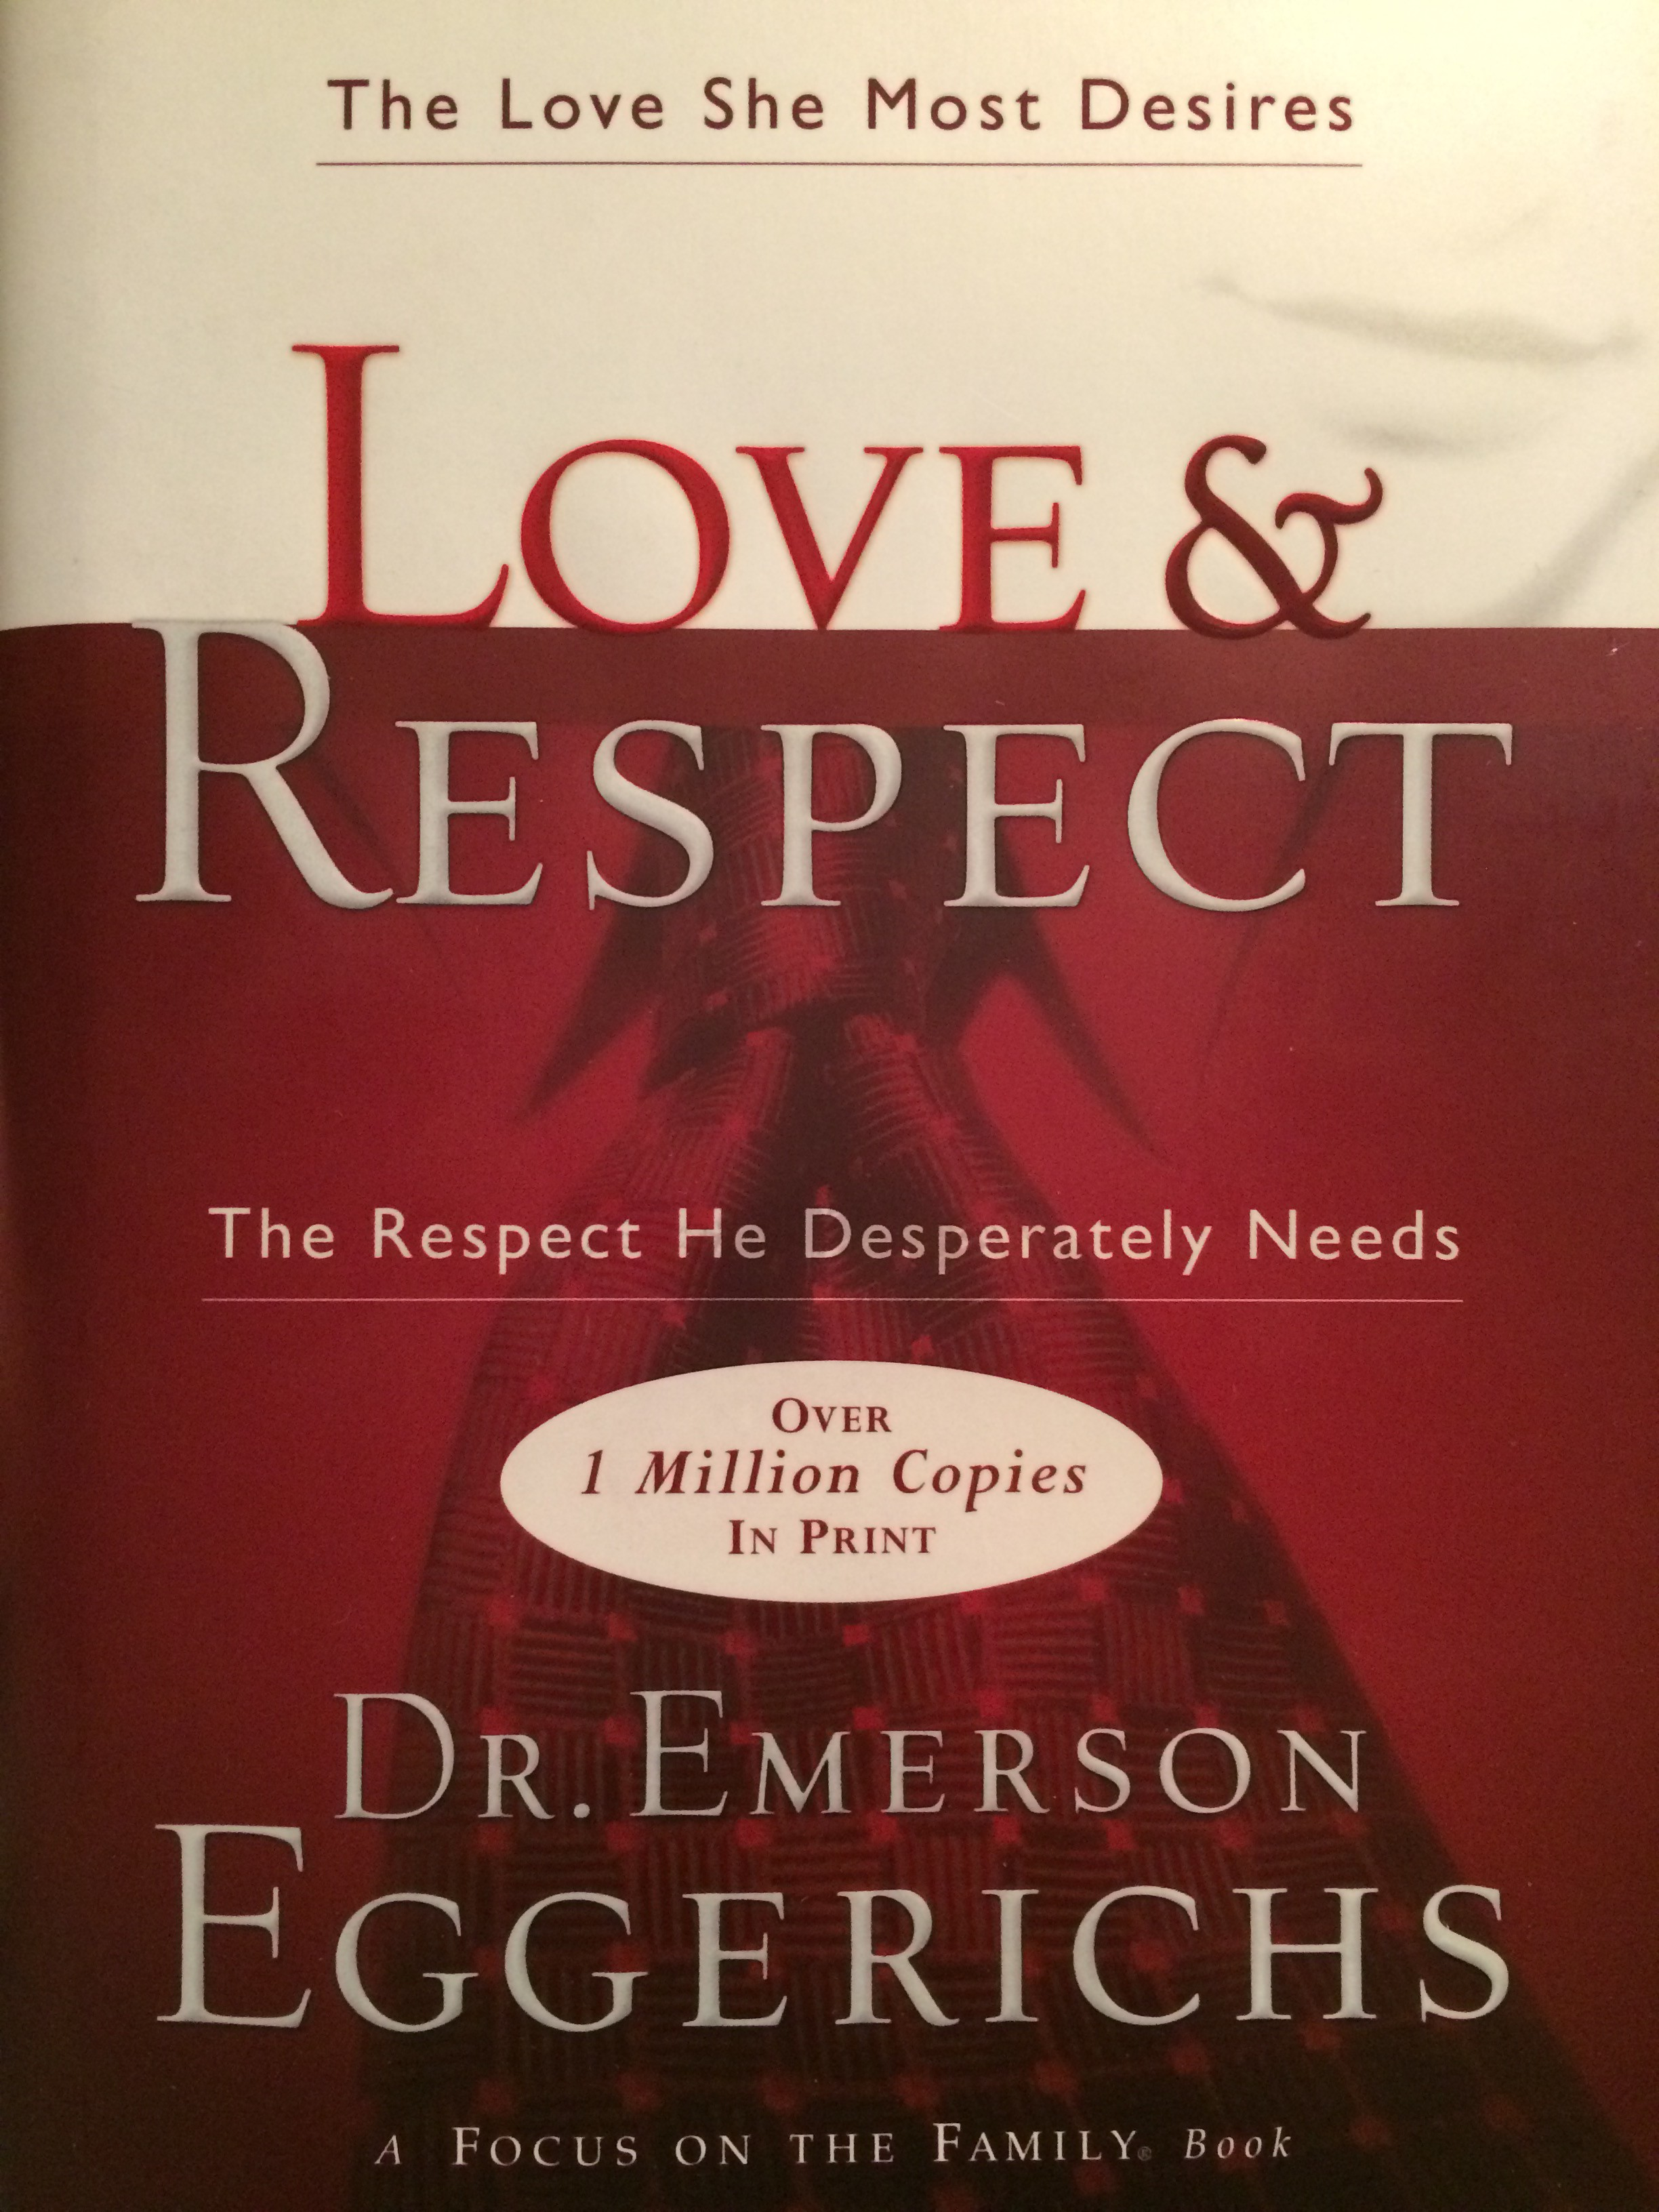 Pre Marriage Counseling Love Amp Respect Pt 1